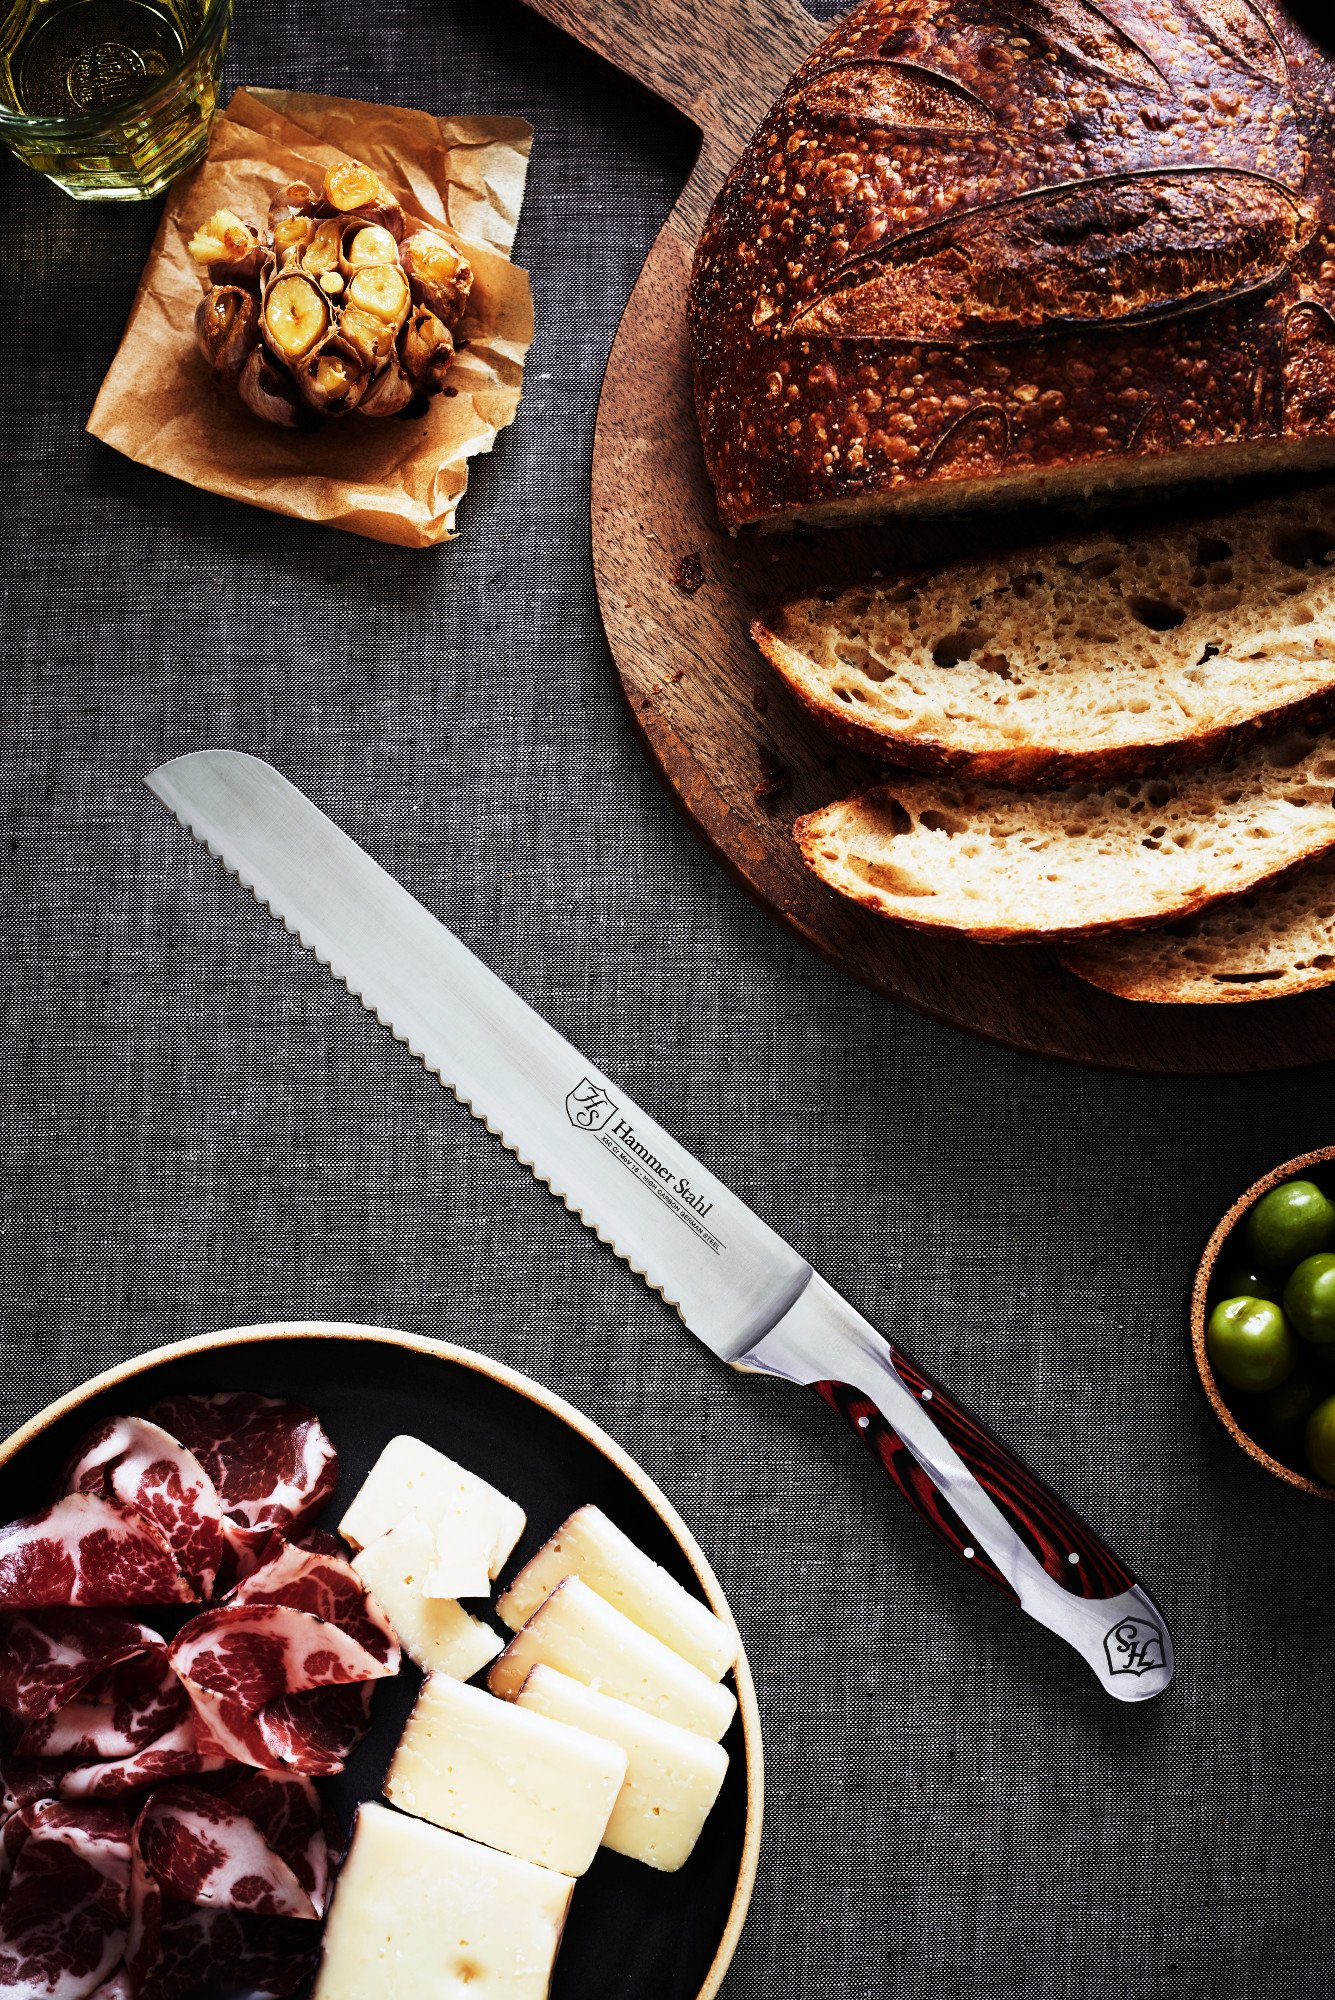 Hammer Stahl 8-Inch Bread Knife - Scallop Serrated Blade - High Carbon German Steel - Ergonomic Quad-Tang Pakkawood Handle 2 ✅ SCALLOPED EDGE - Rounded scallop-style serrated edge is extremely sharp, cleanly slicing instead of tearing. ✅ PREMIUM MATERIAL - Our cutlery is made from top-quality German X50CrMoV15 High Carbon Stainless Steel. It is forged and tempered to precise specifications and a Rockwell hardness of 55 - 57 that provides a superior edge and lasting durability. ✅ RAZOR SHARP - Each blade is precisely measured by laser for a world-class cutting edge. Every blade is sharpened to a 20 degree bevel angle.